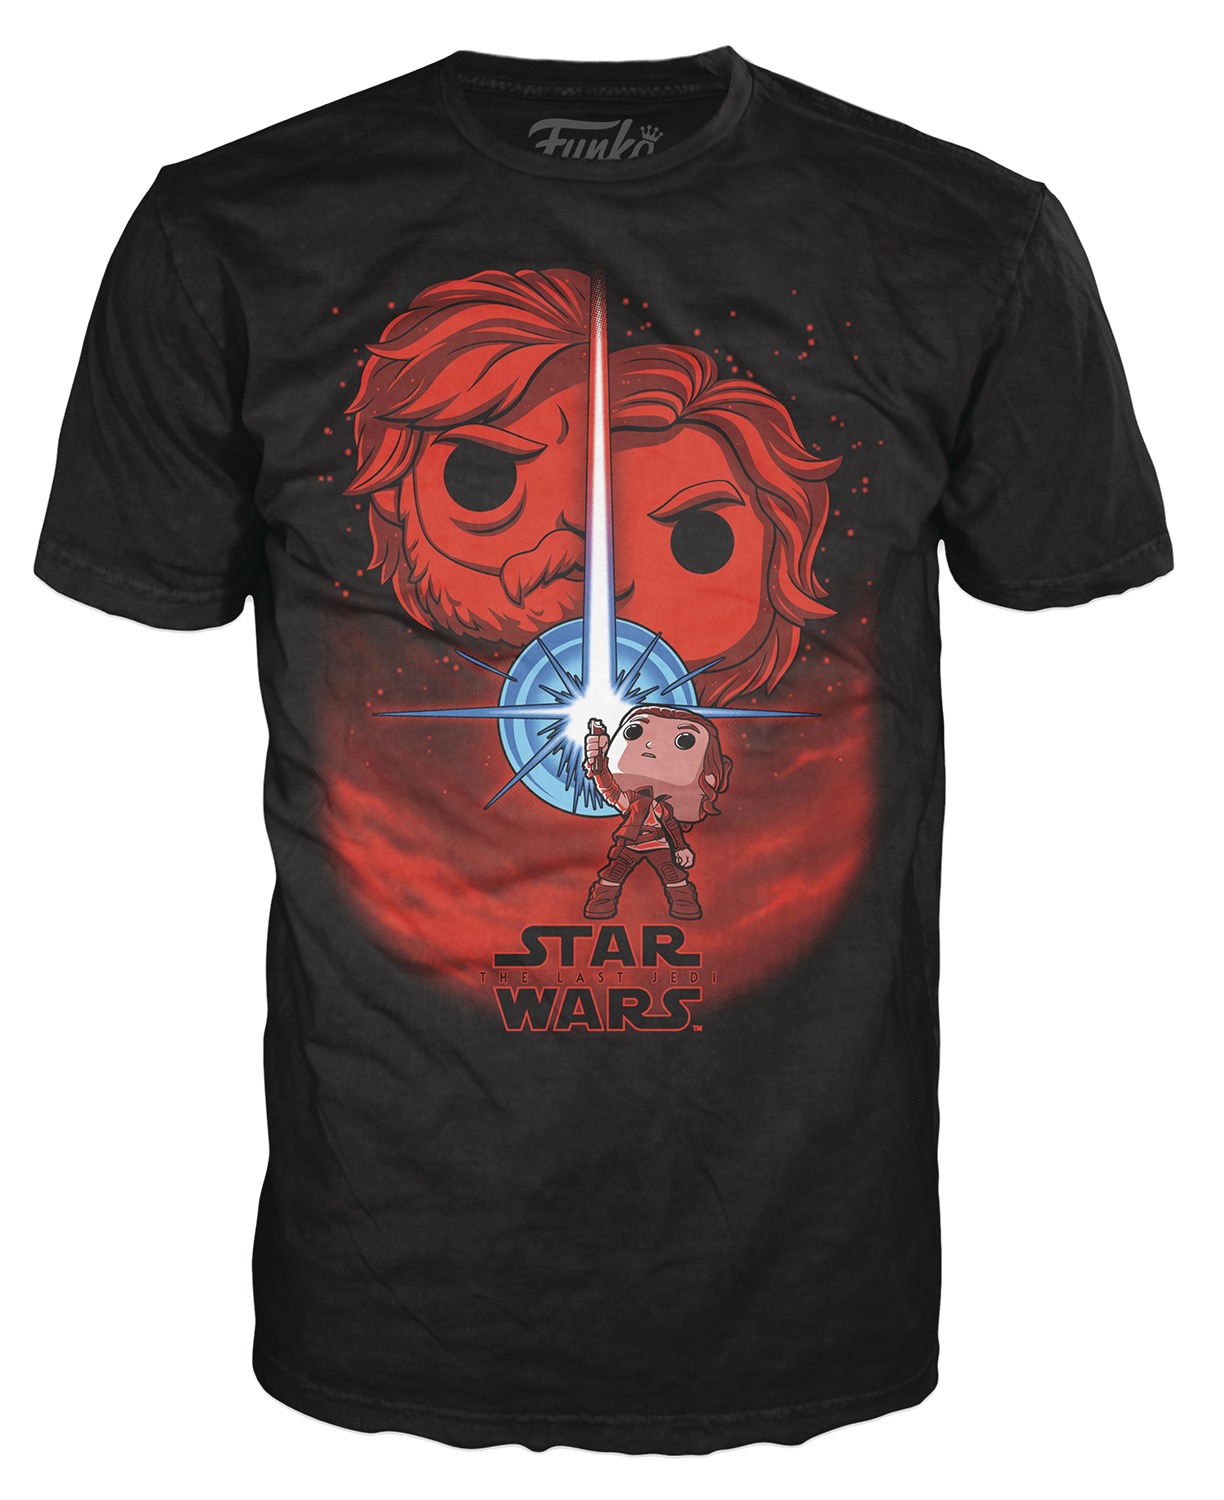 POP TEES THE LAST JEDI BLACK T/S LG